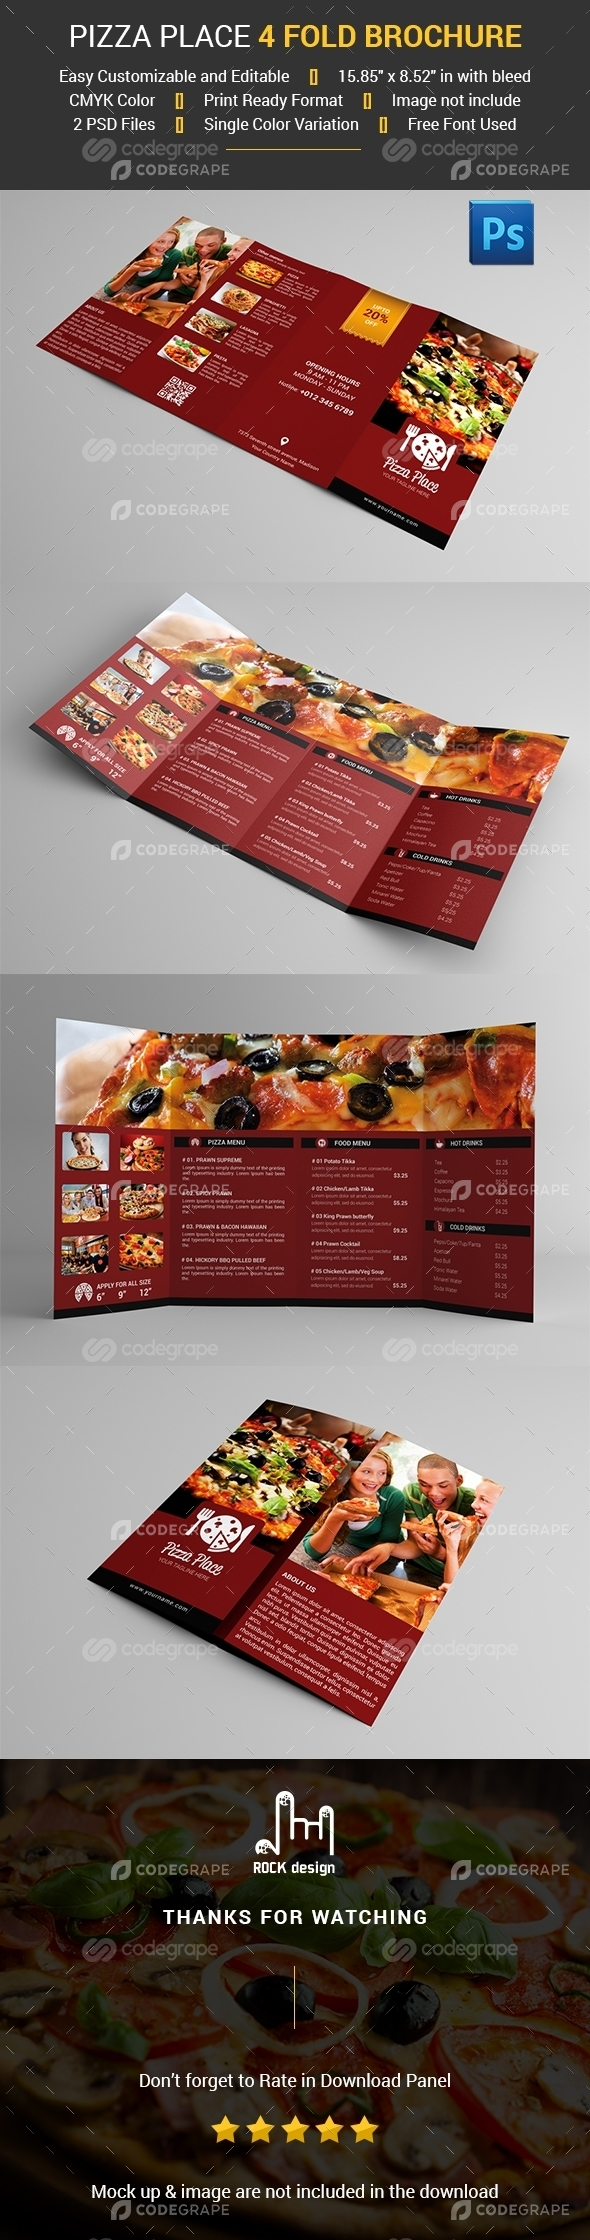 4 Fold Pizza Place Brochure